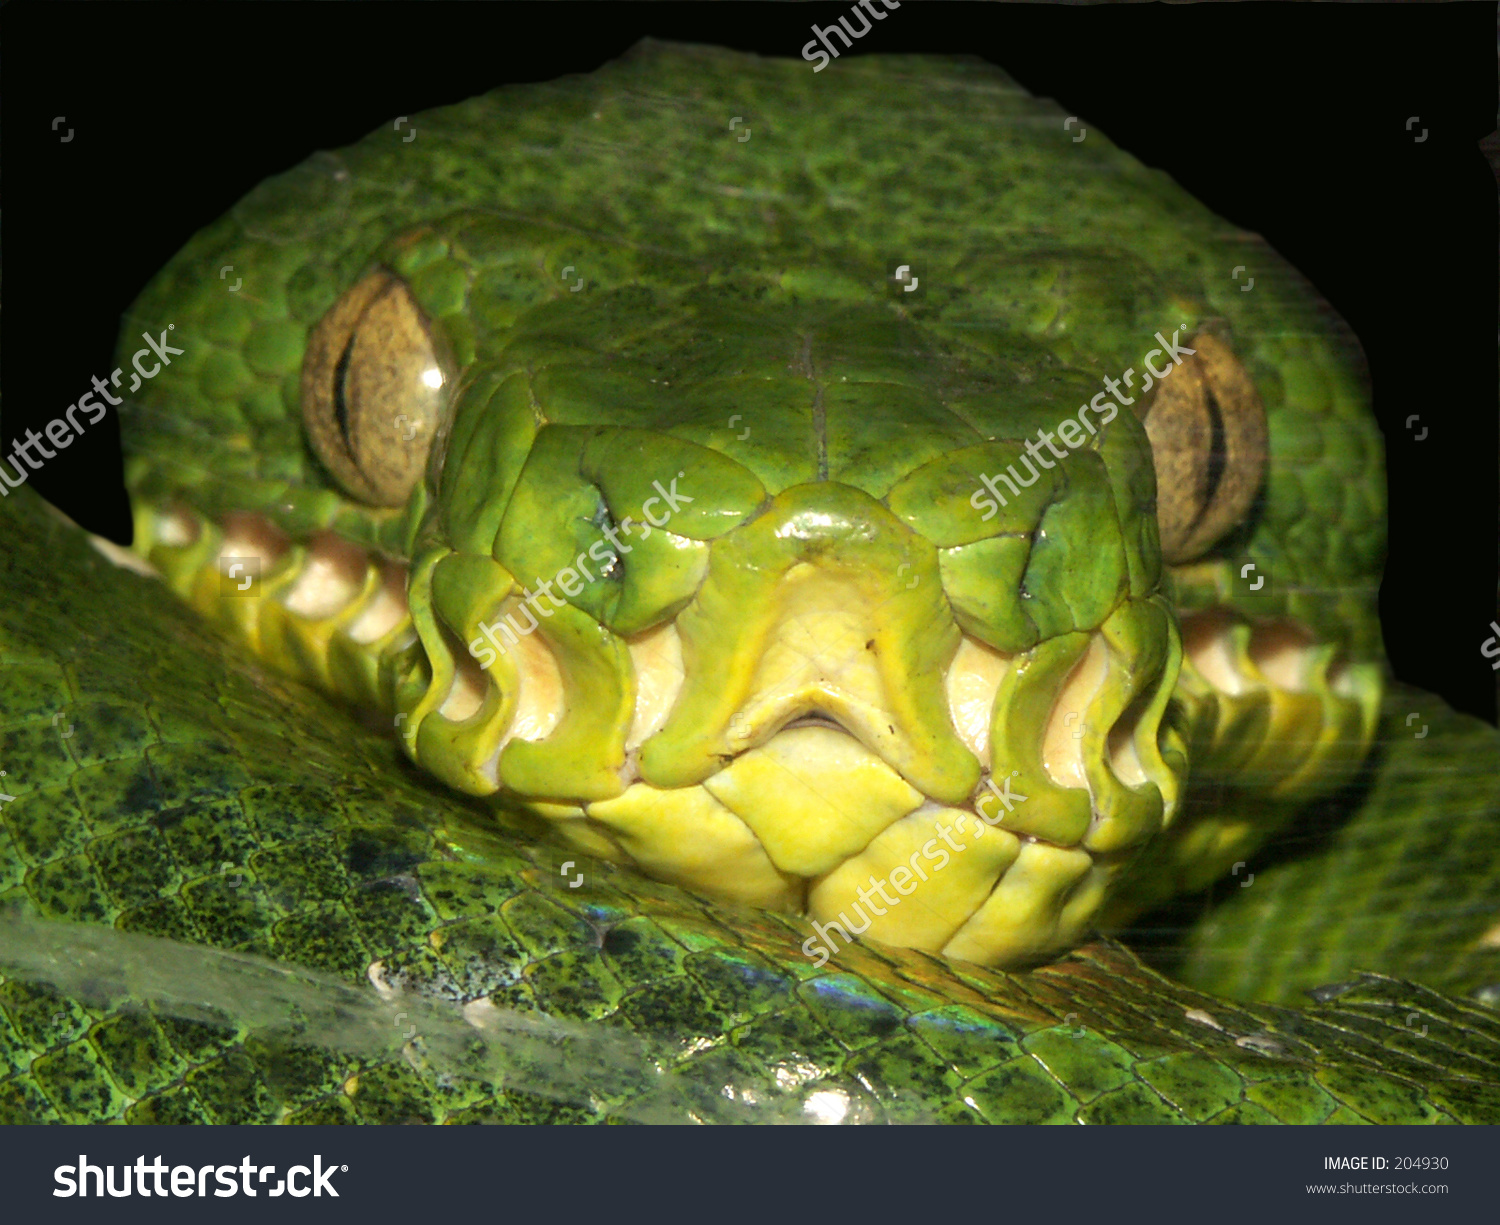 Emerald Tree Boa clipart #10, Download drawings